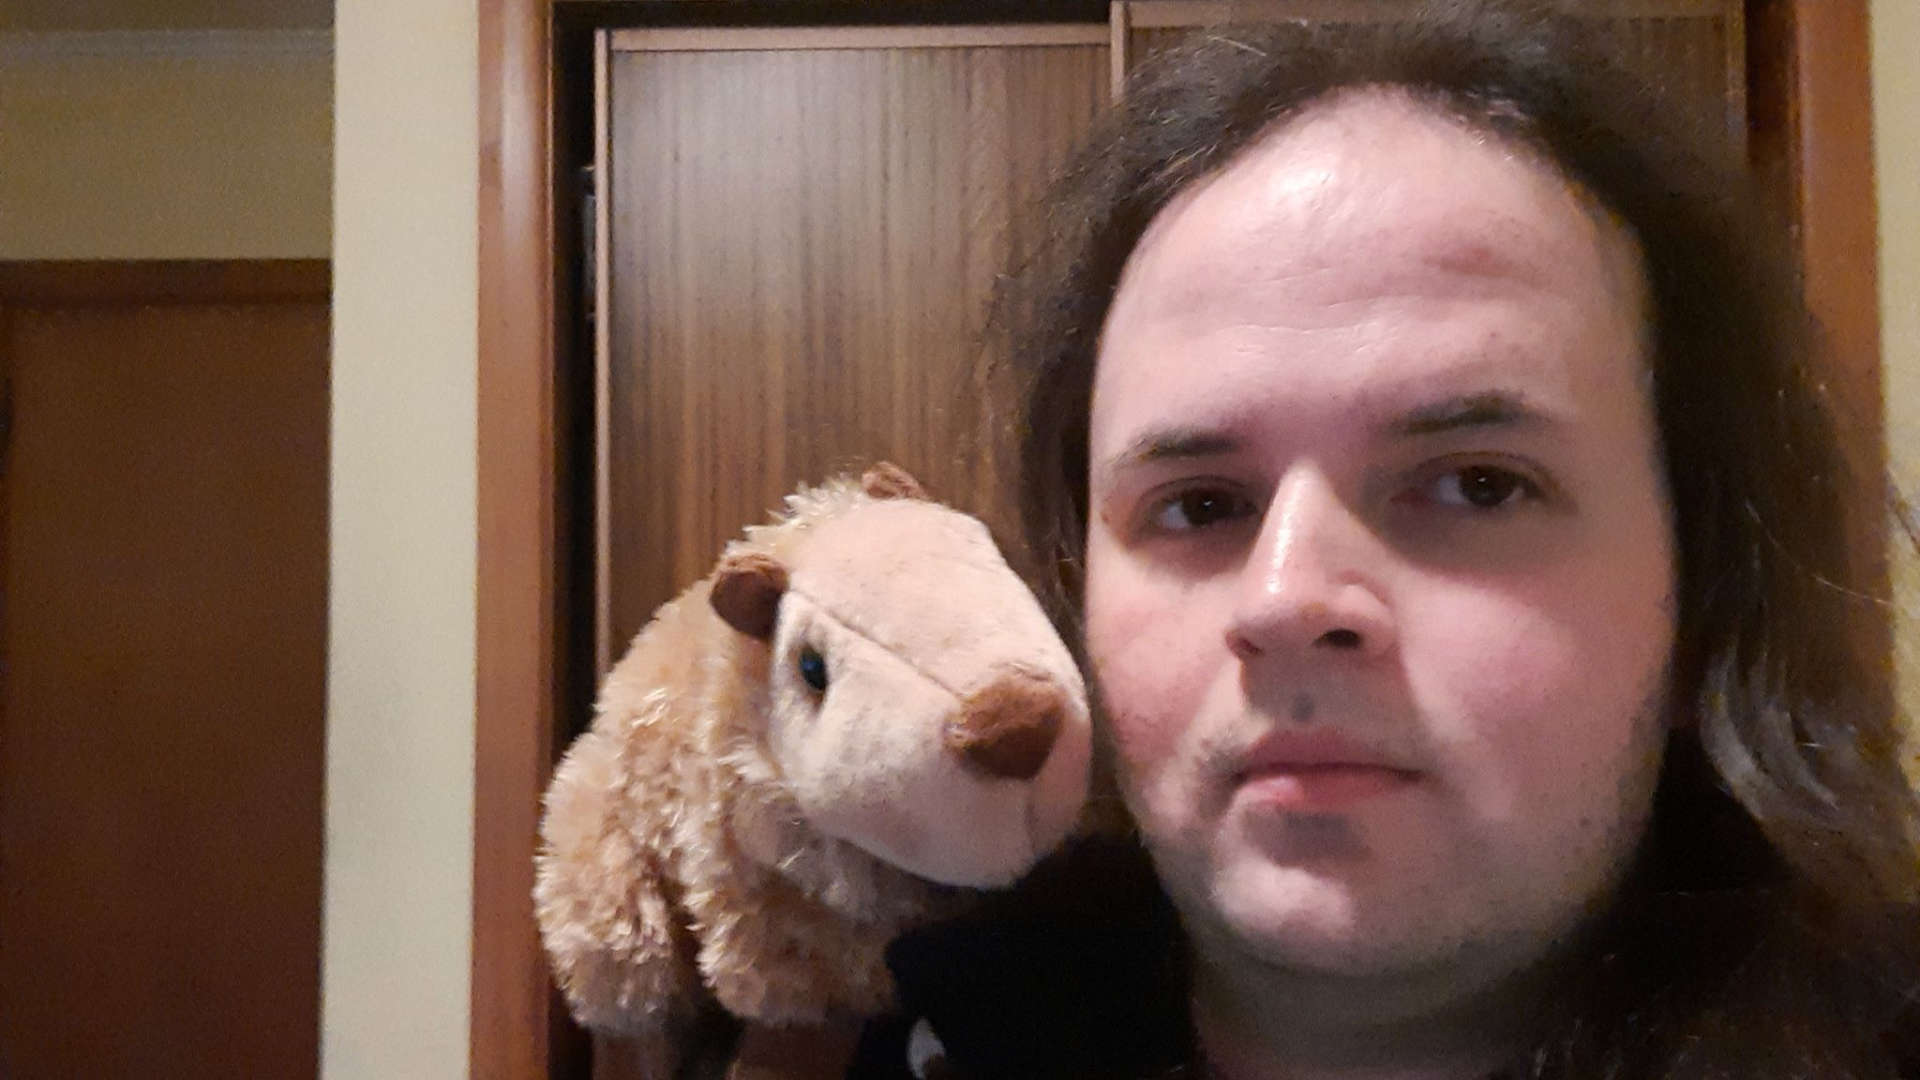 A picture of Cameron Hopkinson, who has long brown hair, light skin and dark eyes. They have a stuffed toy on their shoulder that resembles a wombat.